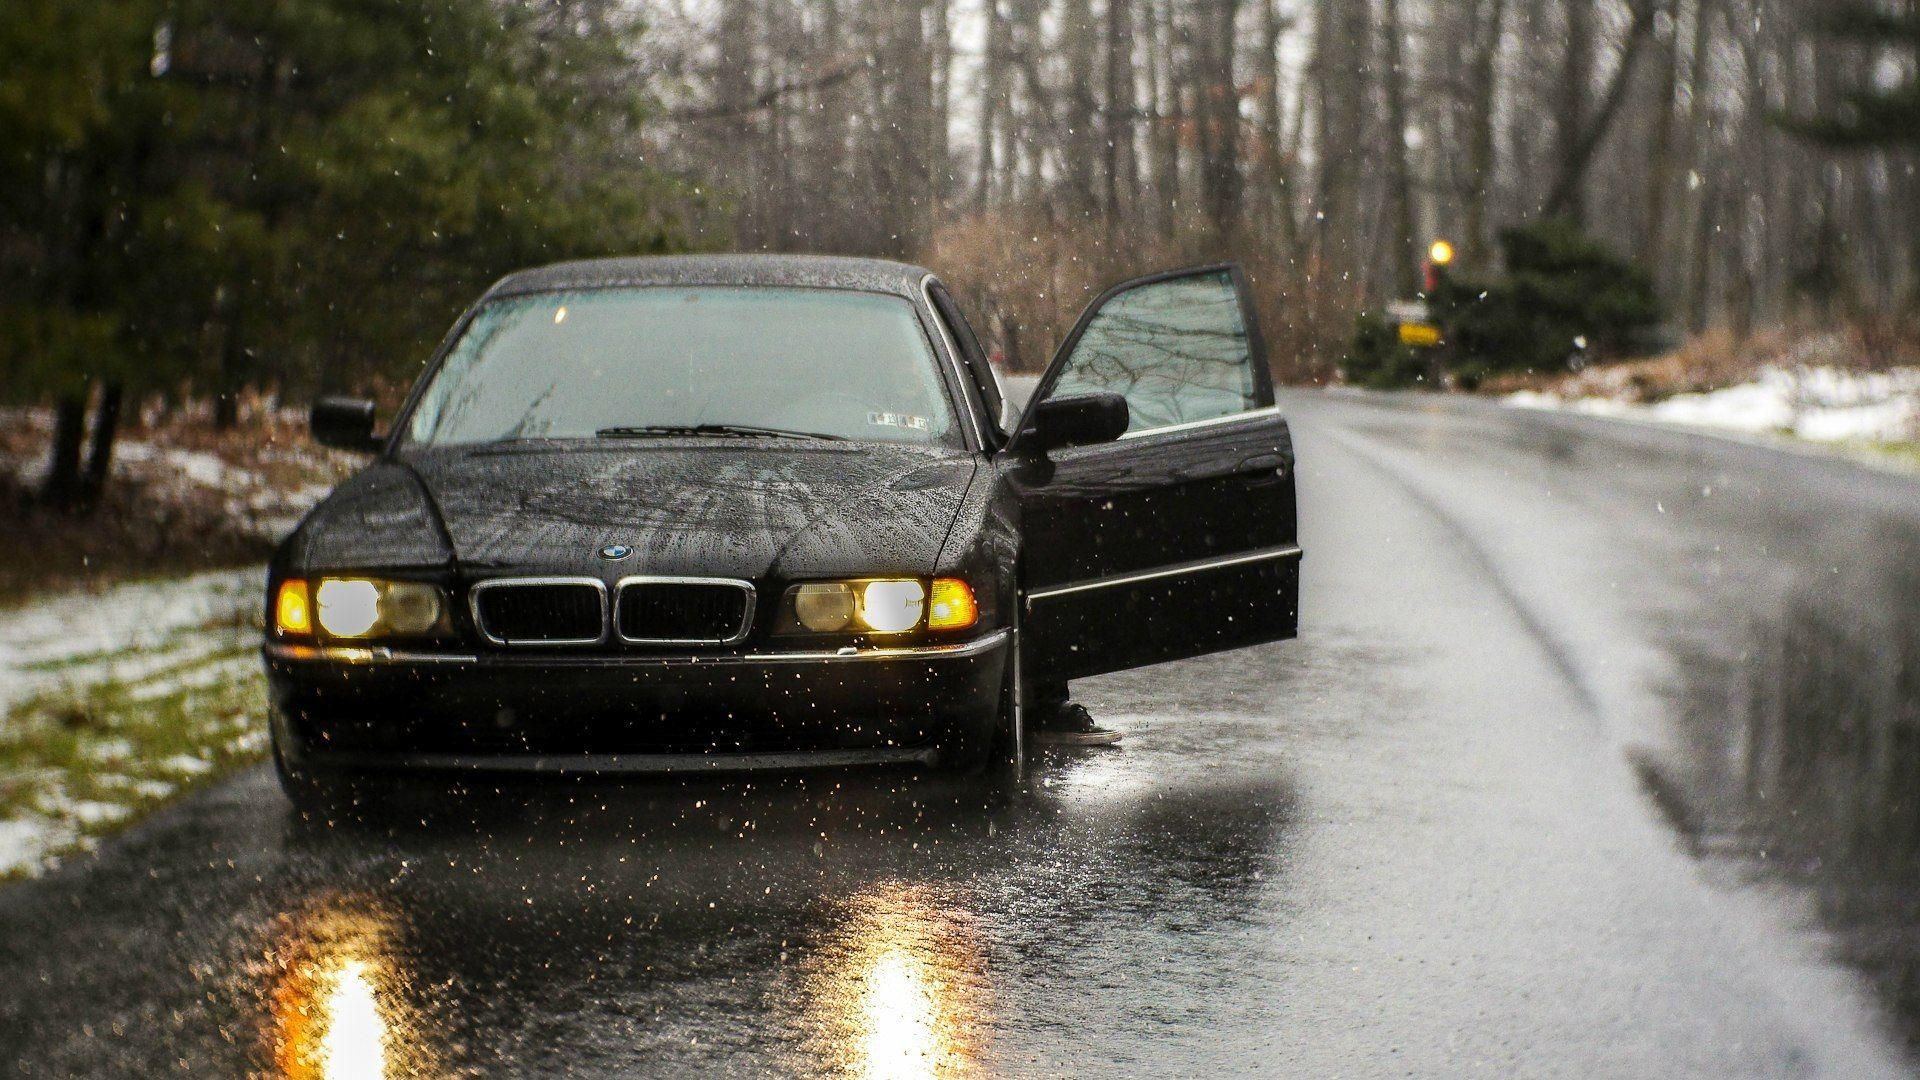 BMW E38 Wallpapers - Wallpaper Cave